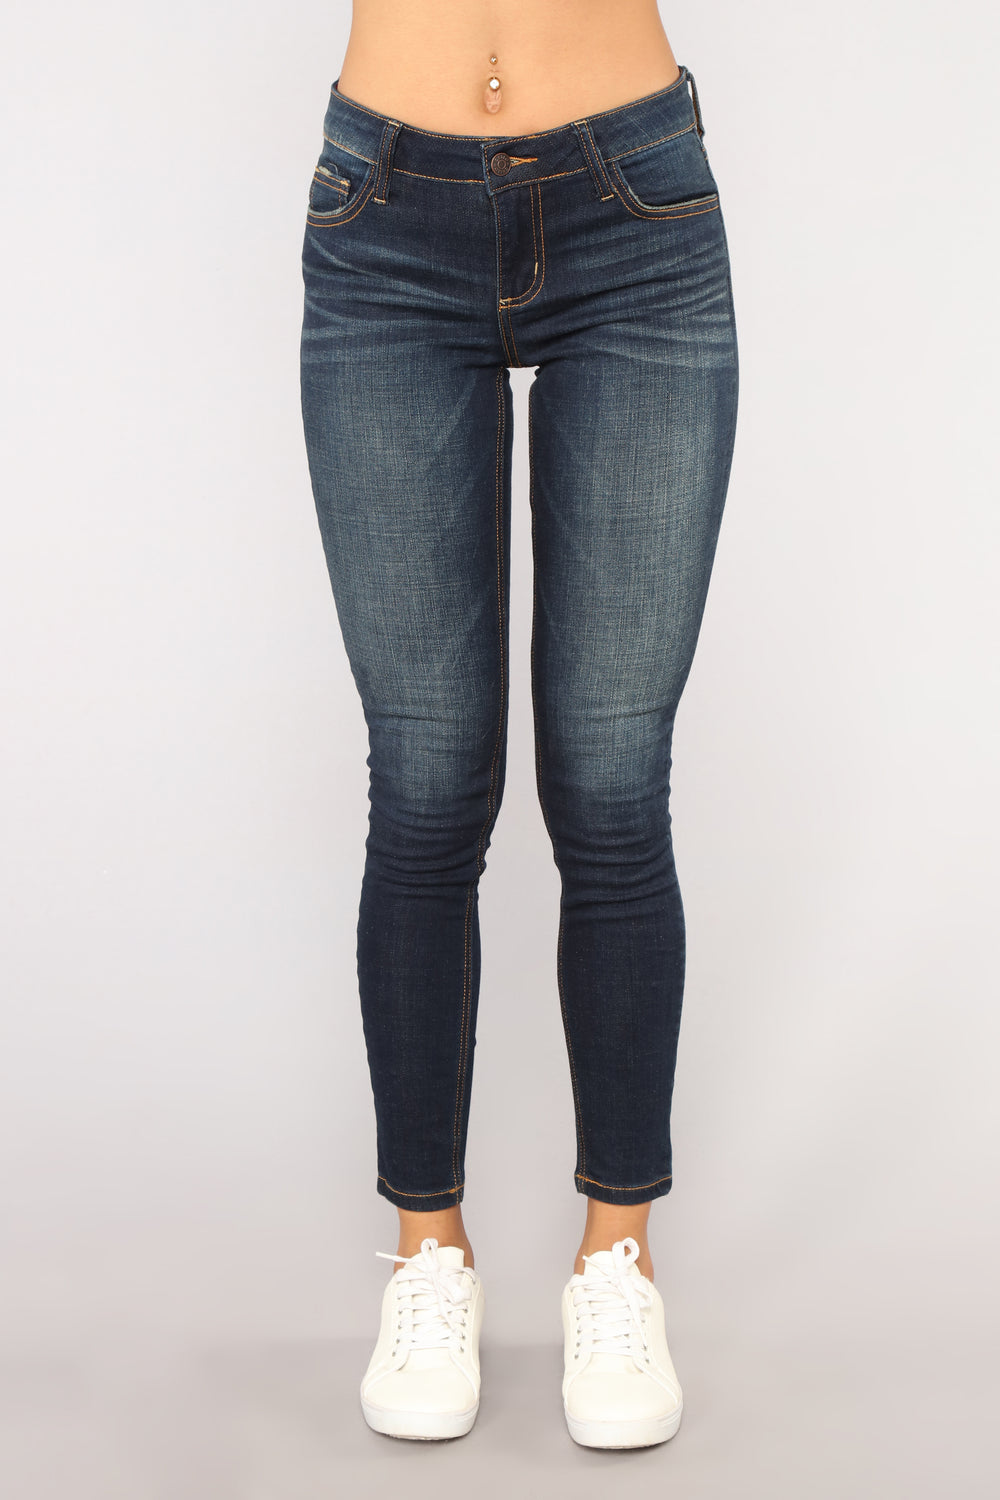 Fall For You Skinny Jeans - Dark Denim